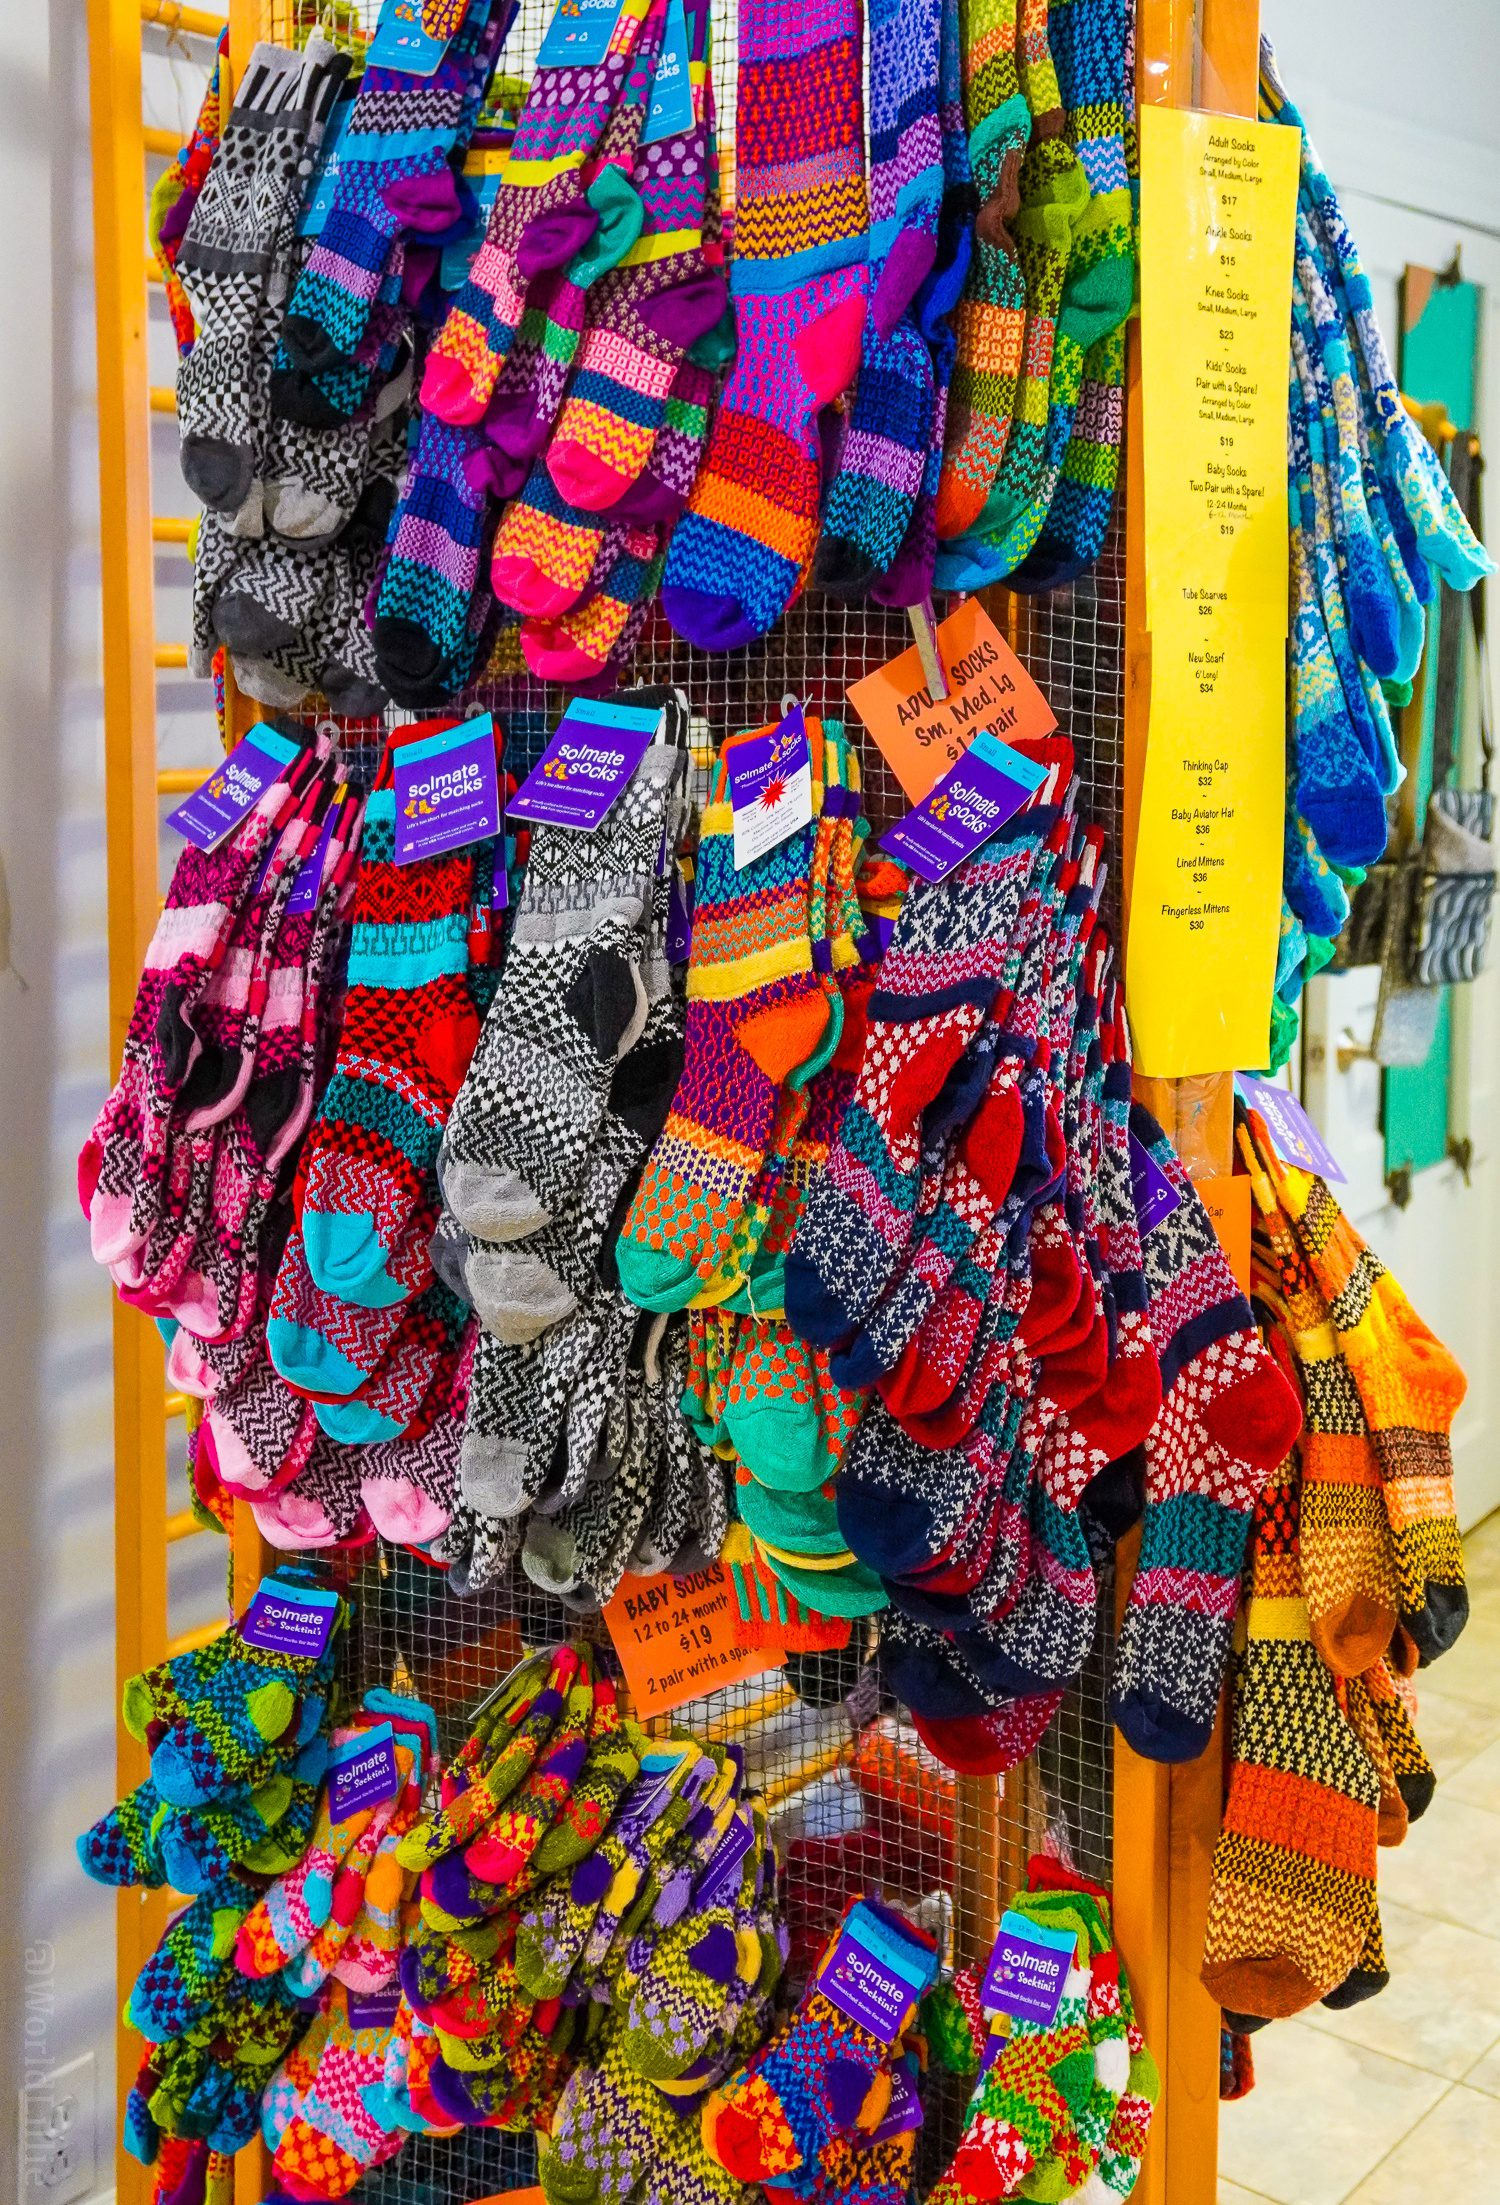 These bright socks are a Main Exhibit best-seller.